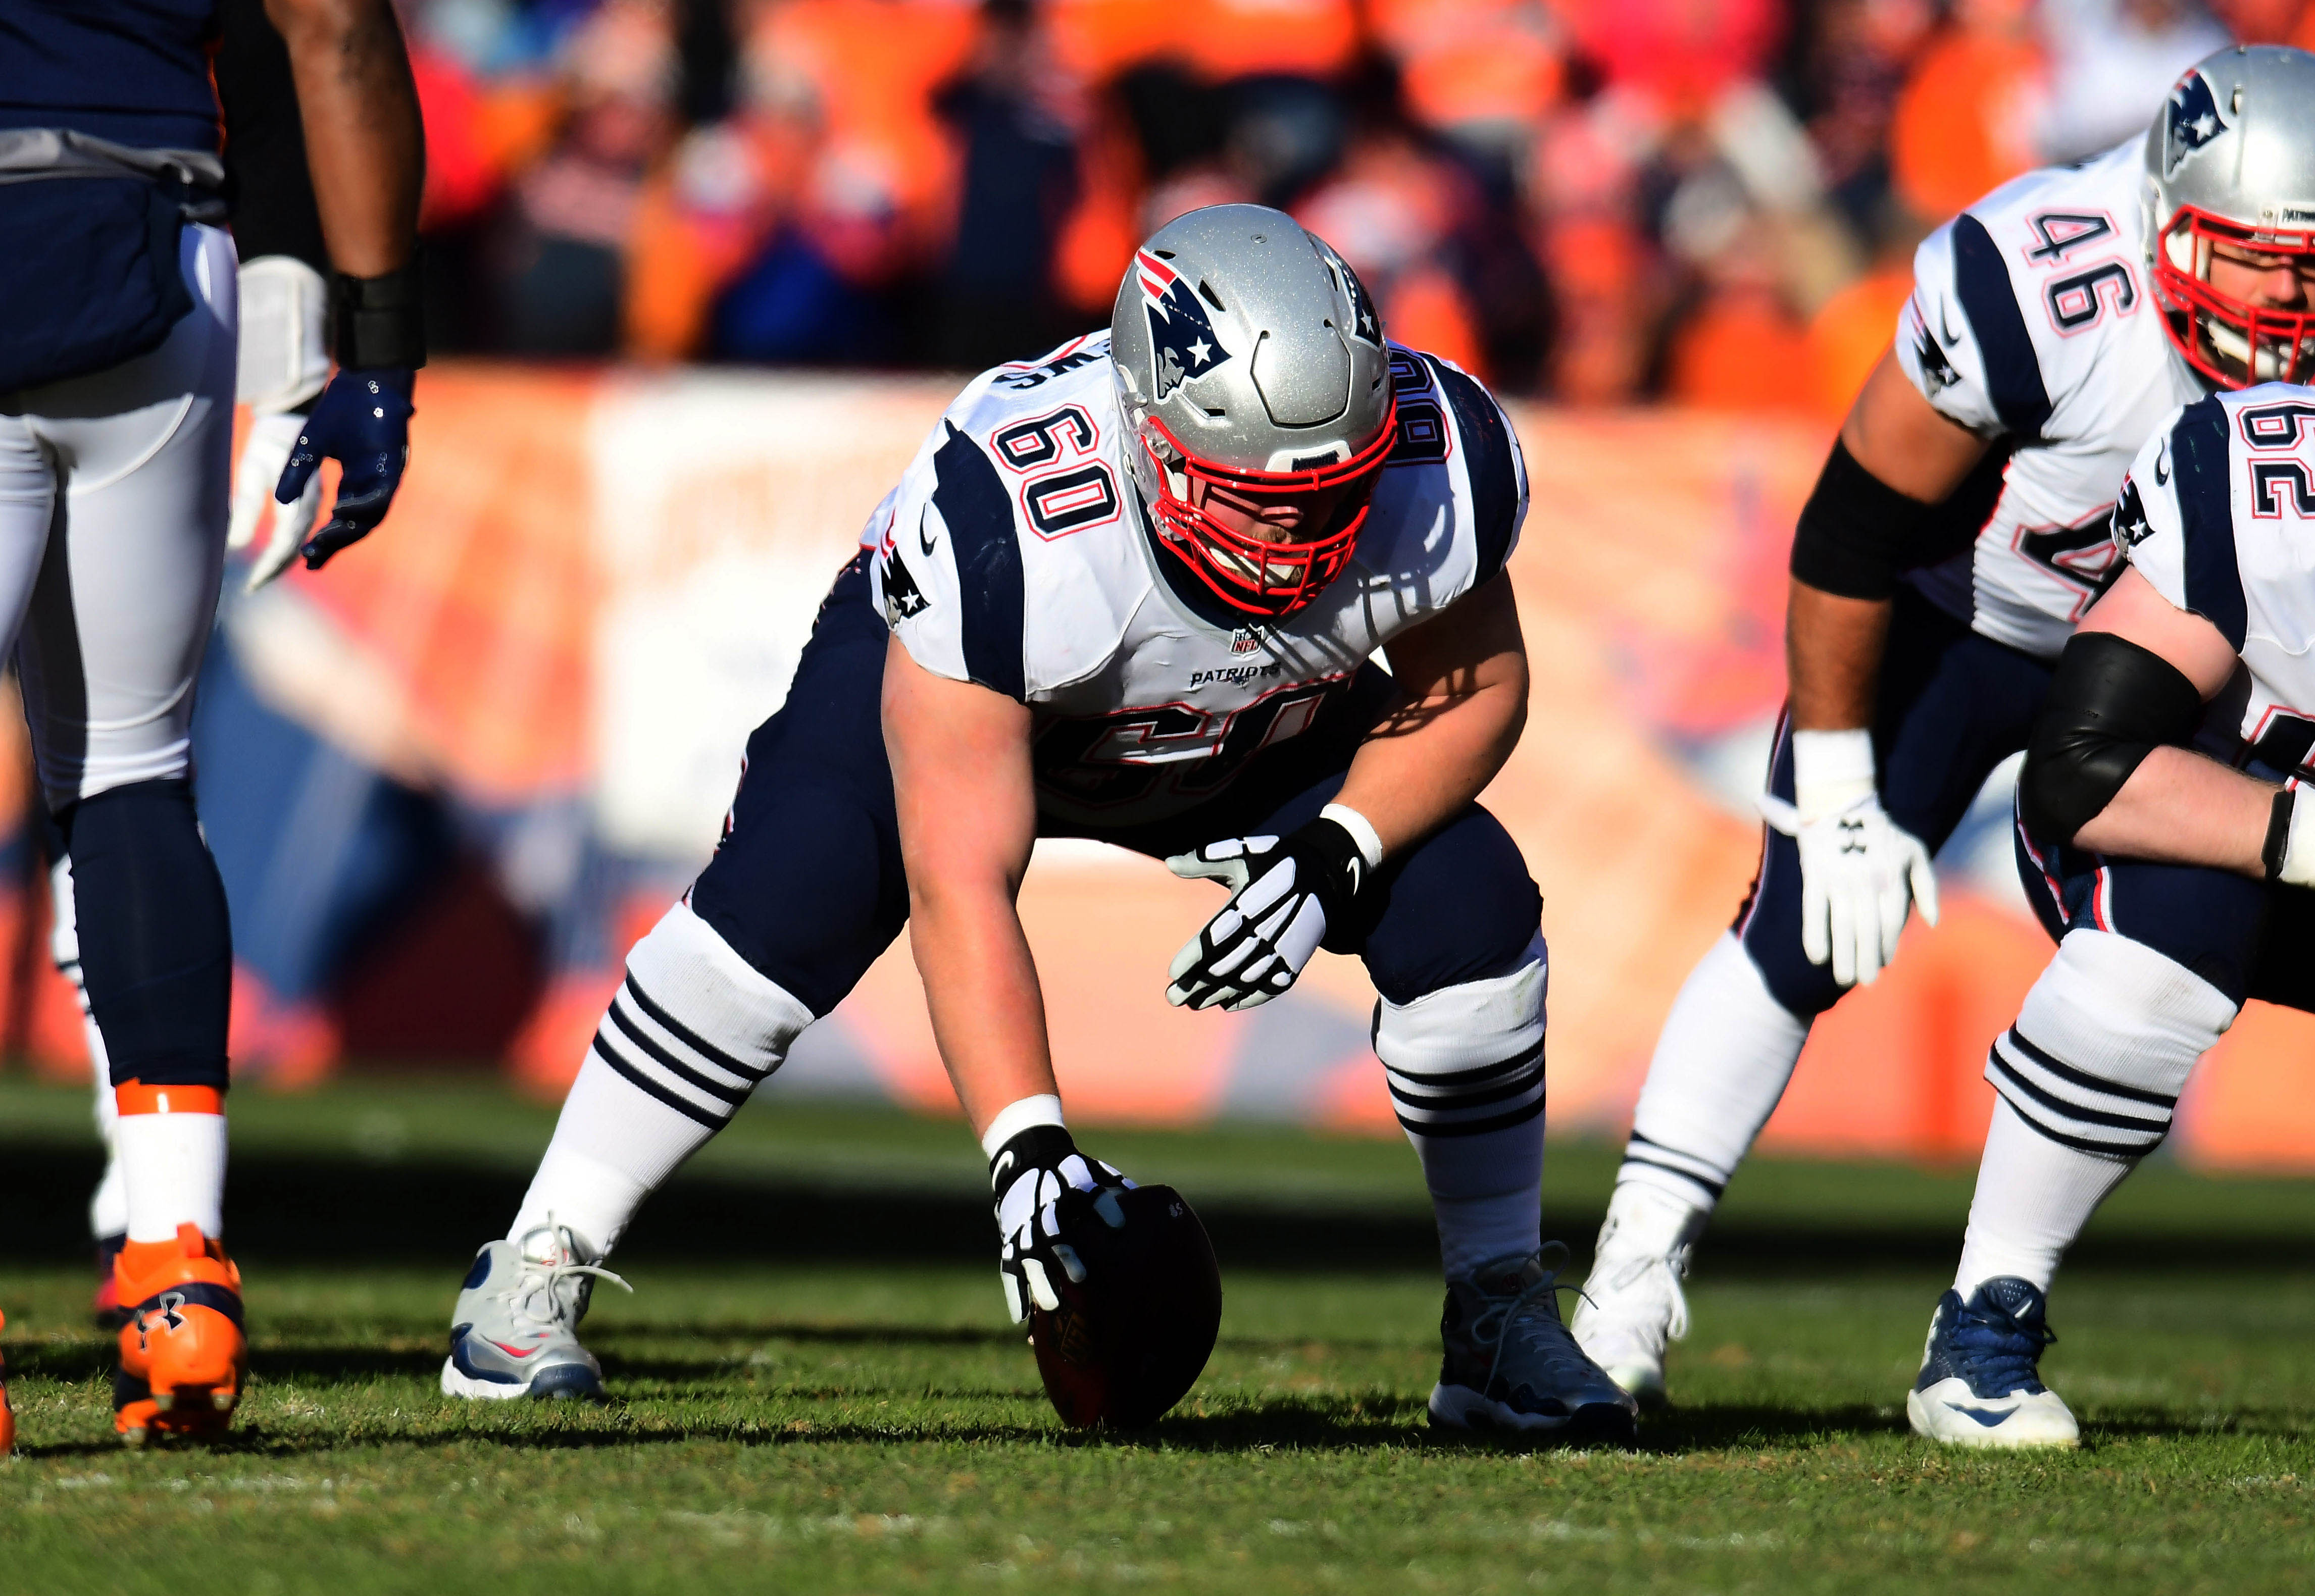 9769957-nfl-new-england-patriots-at-denver-broncos